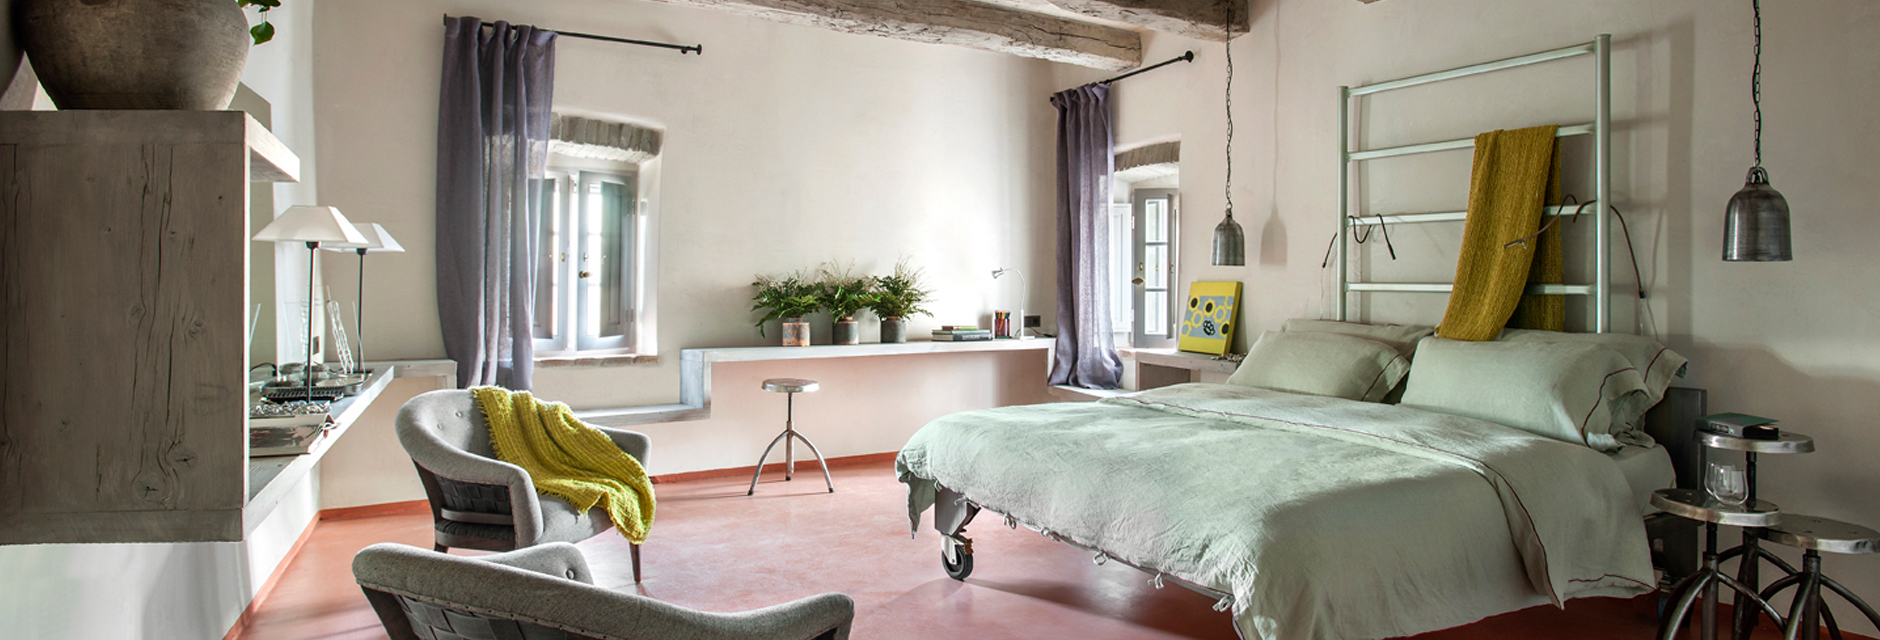 sant andrea 10 bed